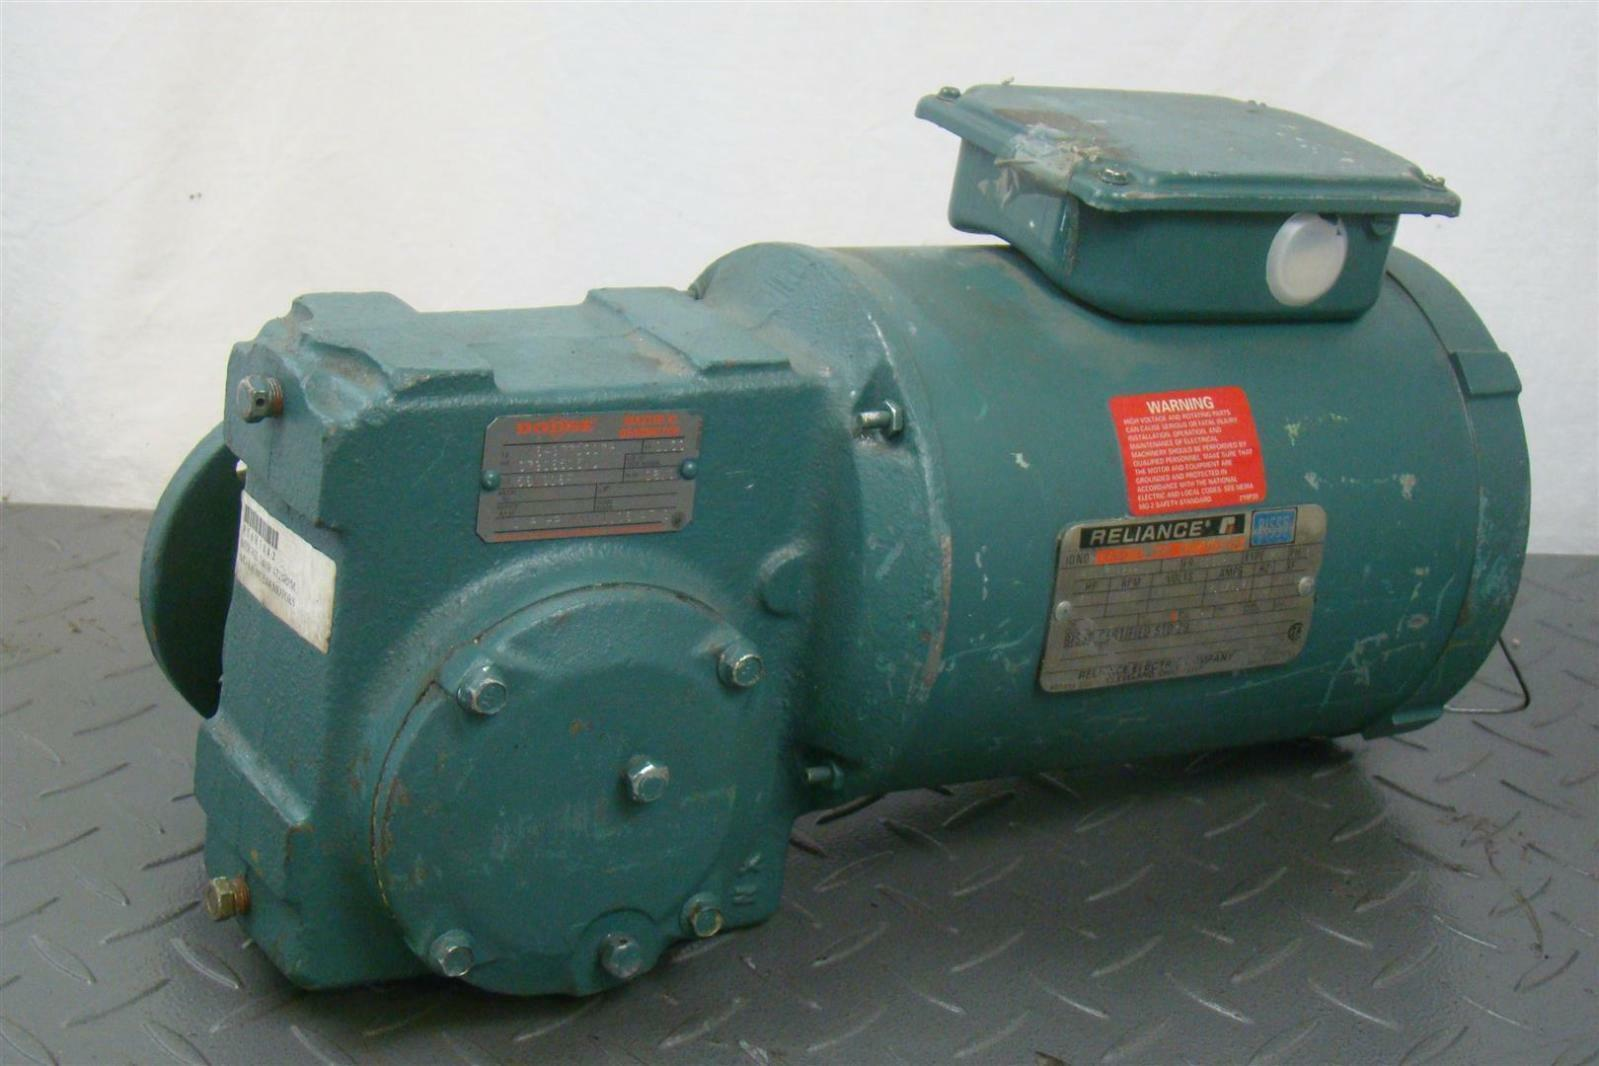 electric motor. RELIANCE 3/4HP ELECTRIC MOTOR VOLTS: 230/460V 60 Hz 3 Phase P56H3842P Electric Motor -